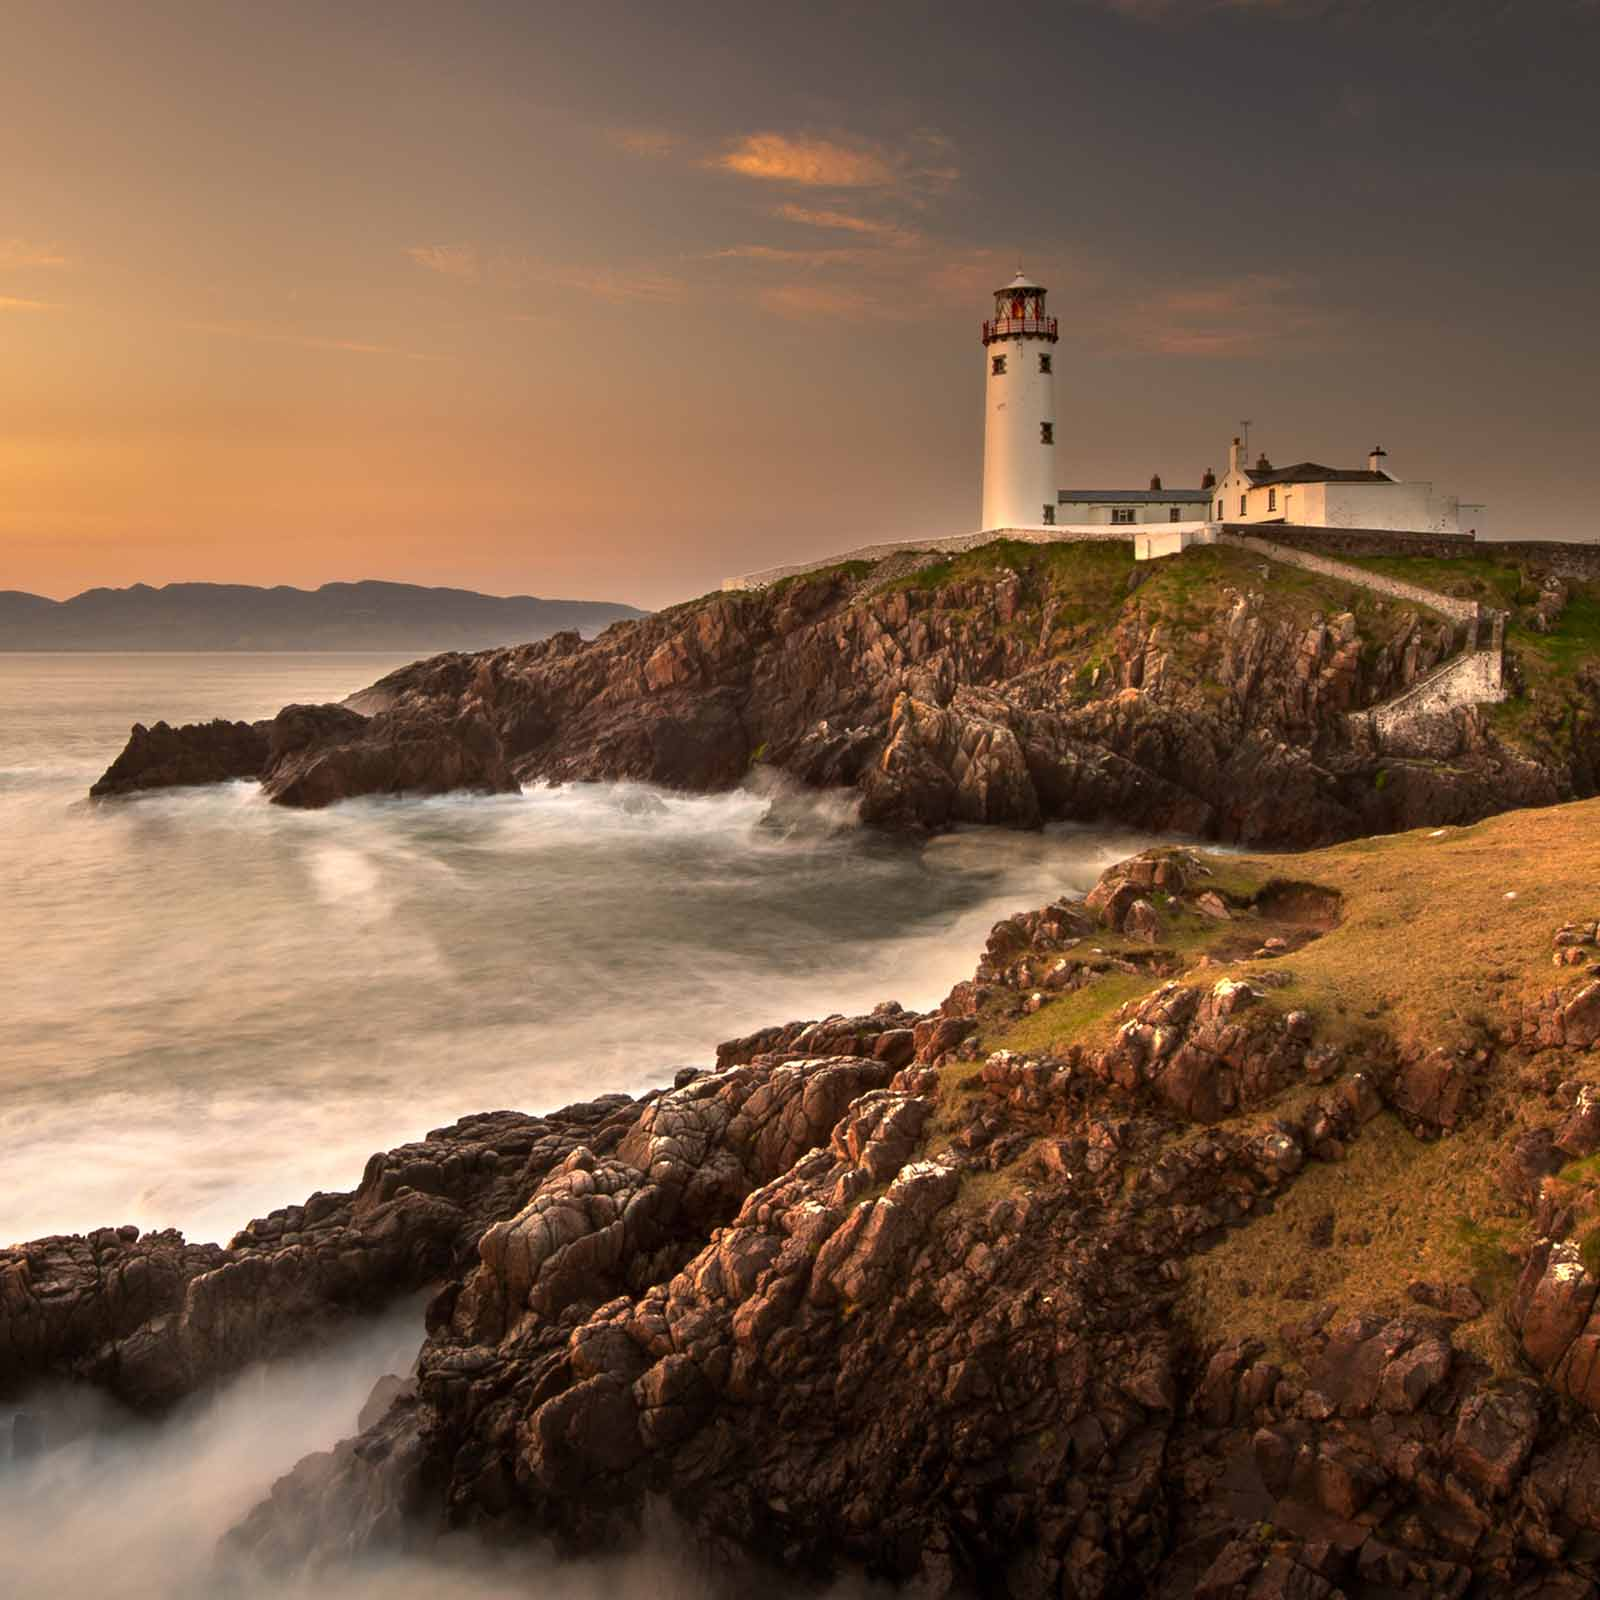 Fanad Lighthouse by George Karbus